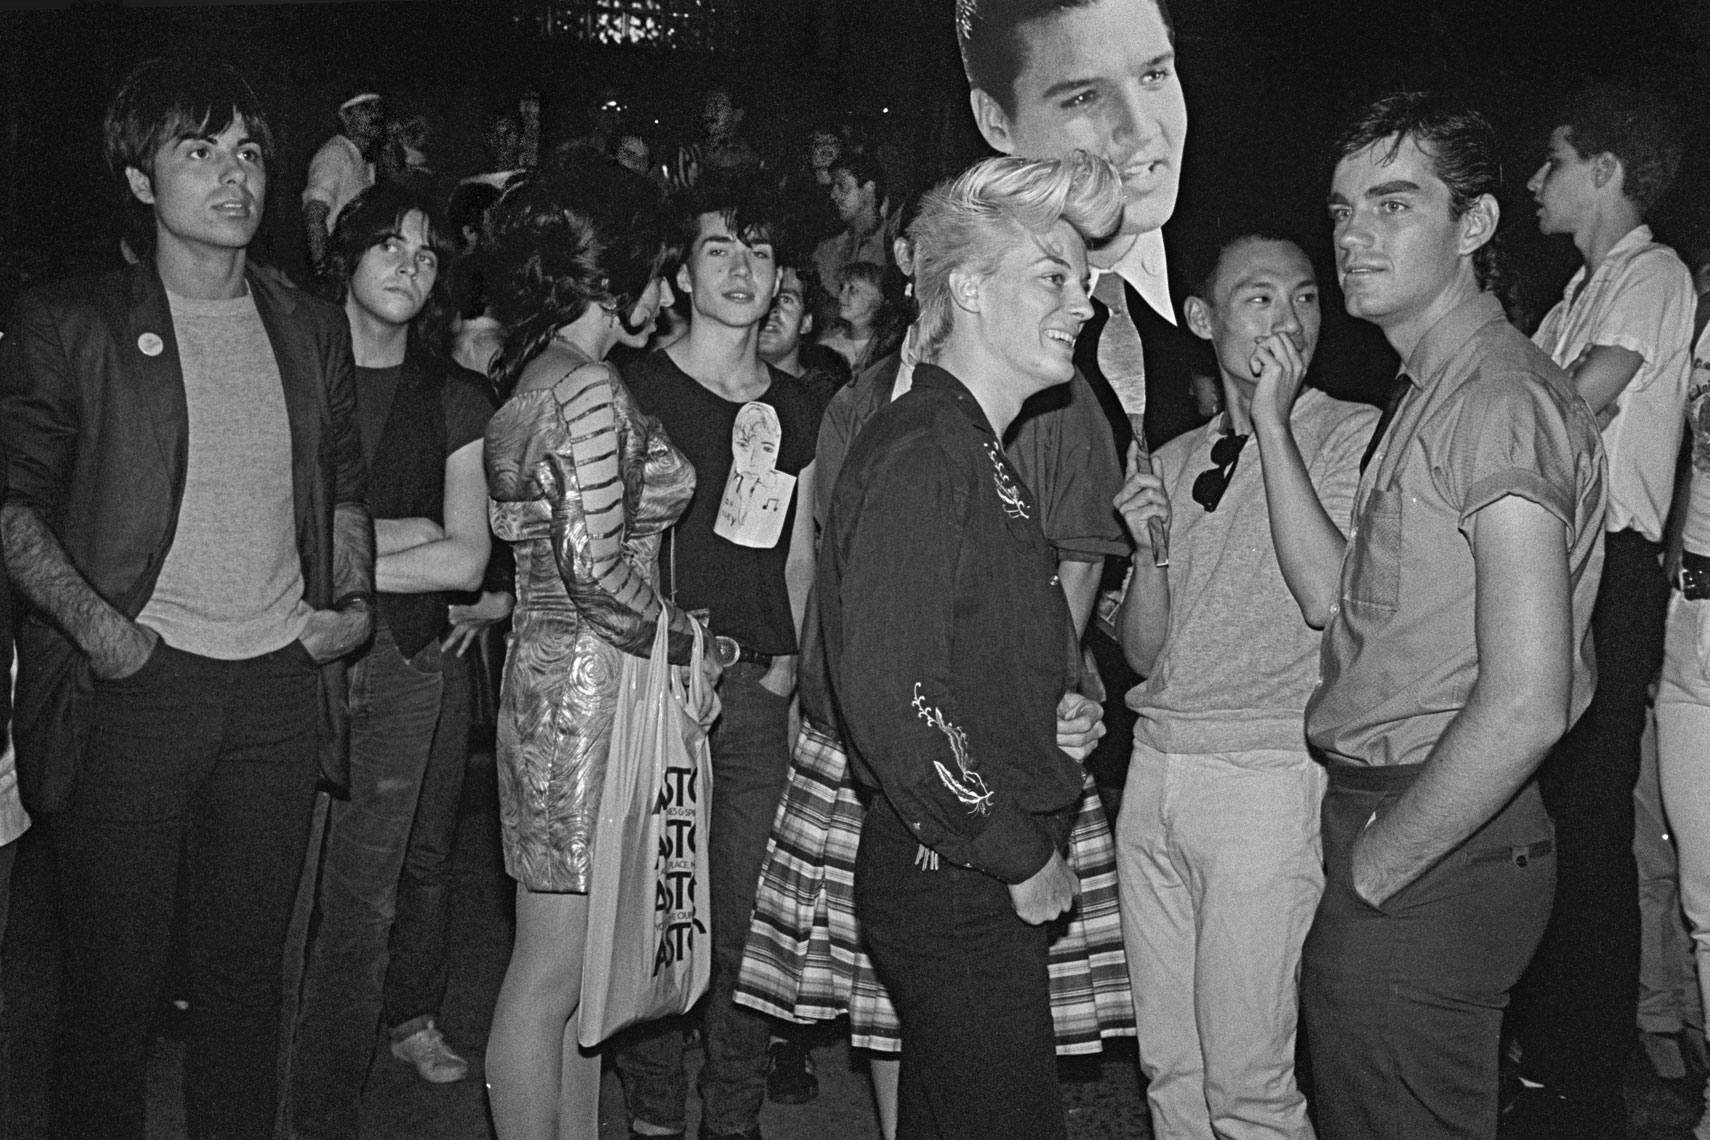 27_Club57_Elvis-Memorial-Party-out-on-street-after-fire-in-Club_John-Sex-and-Tseng-Kwong-Chi_0880.jpg